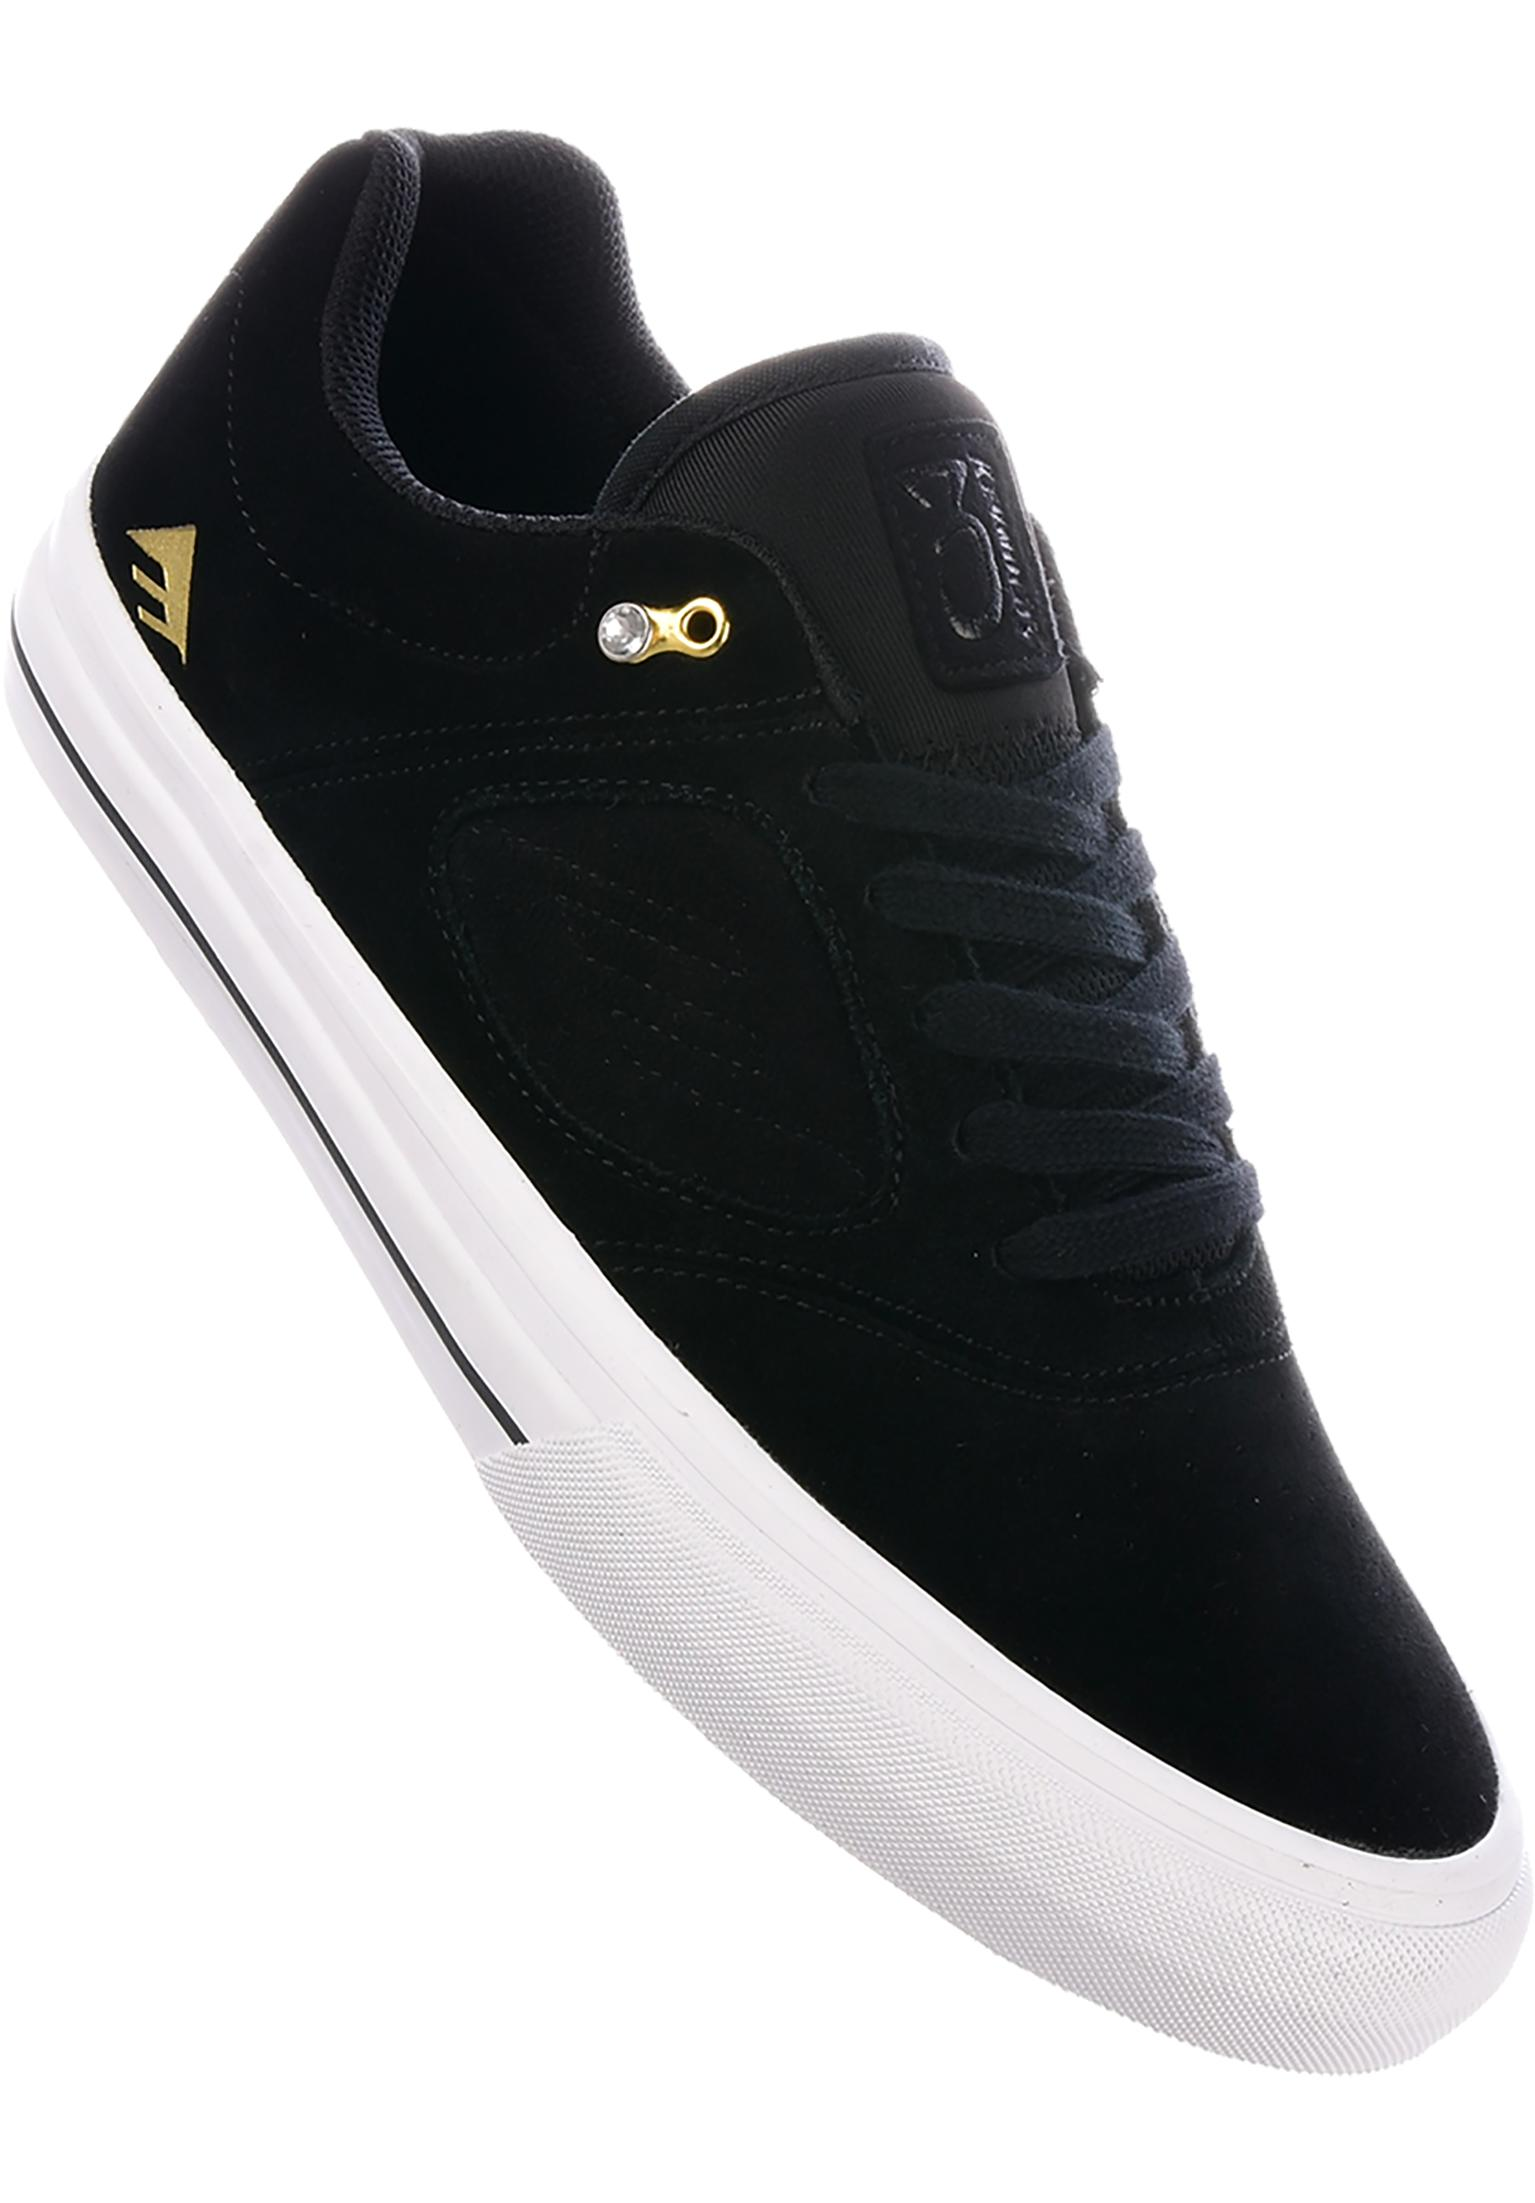 hot new products hot products popular brand https://www.titus.at/dvs-schuhe-jungs-quentin-black-0603672/ https ...